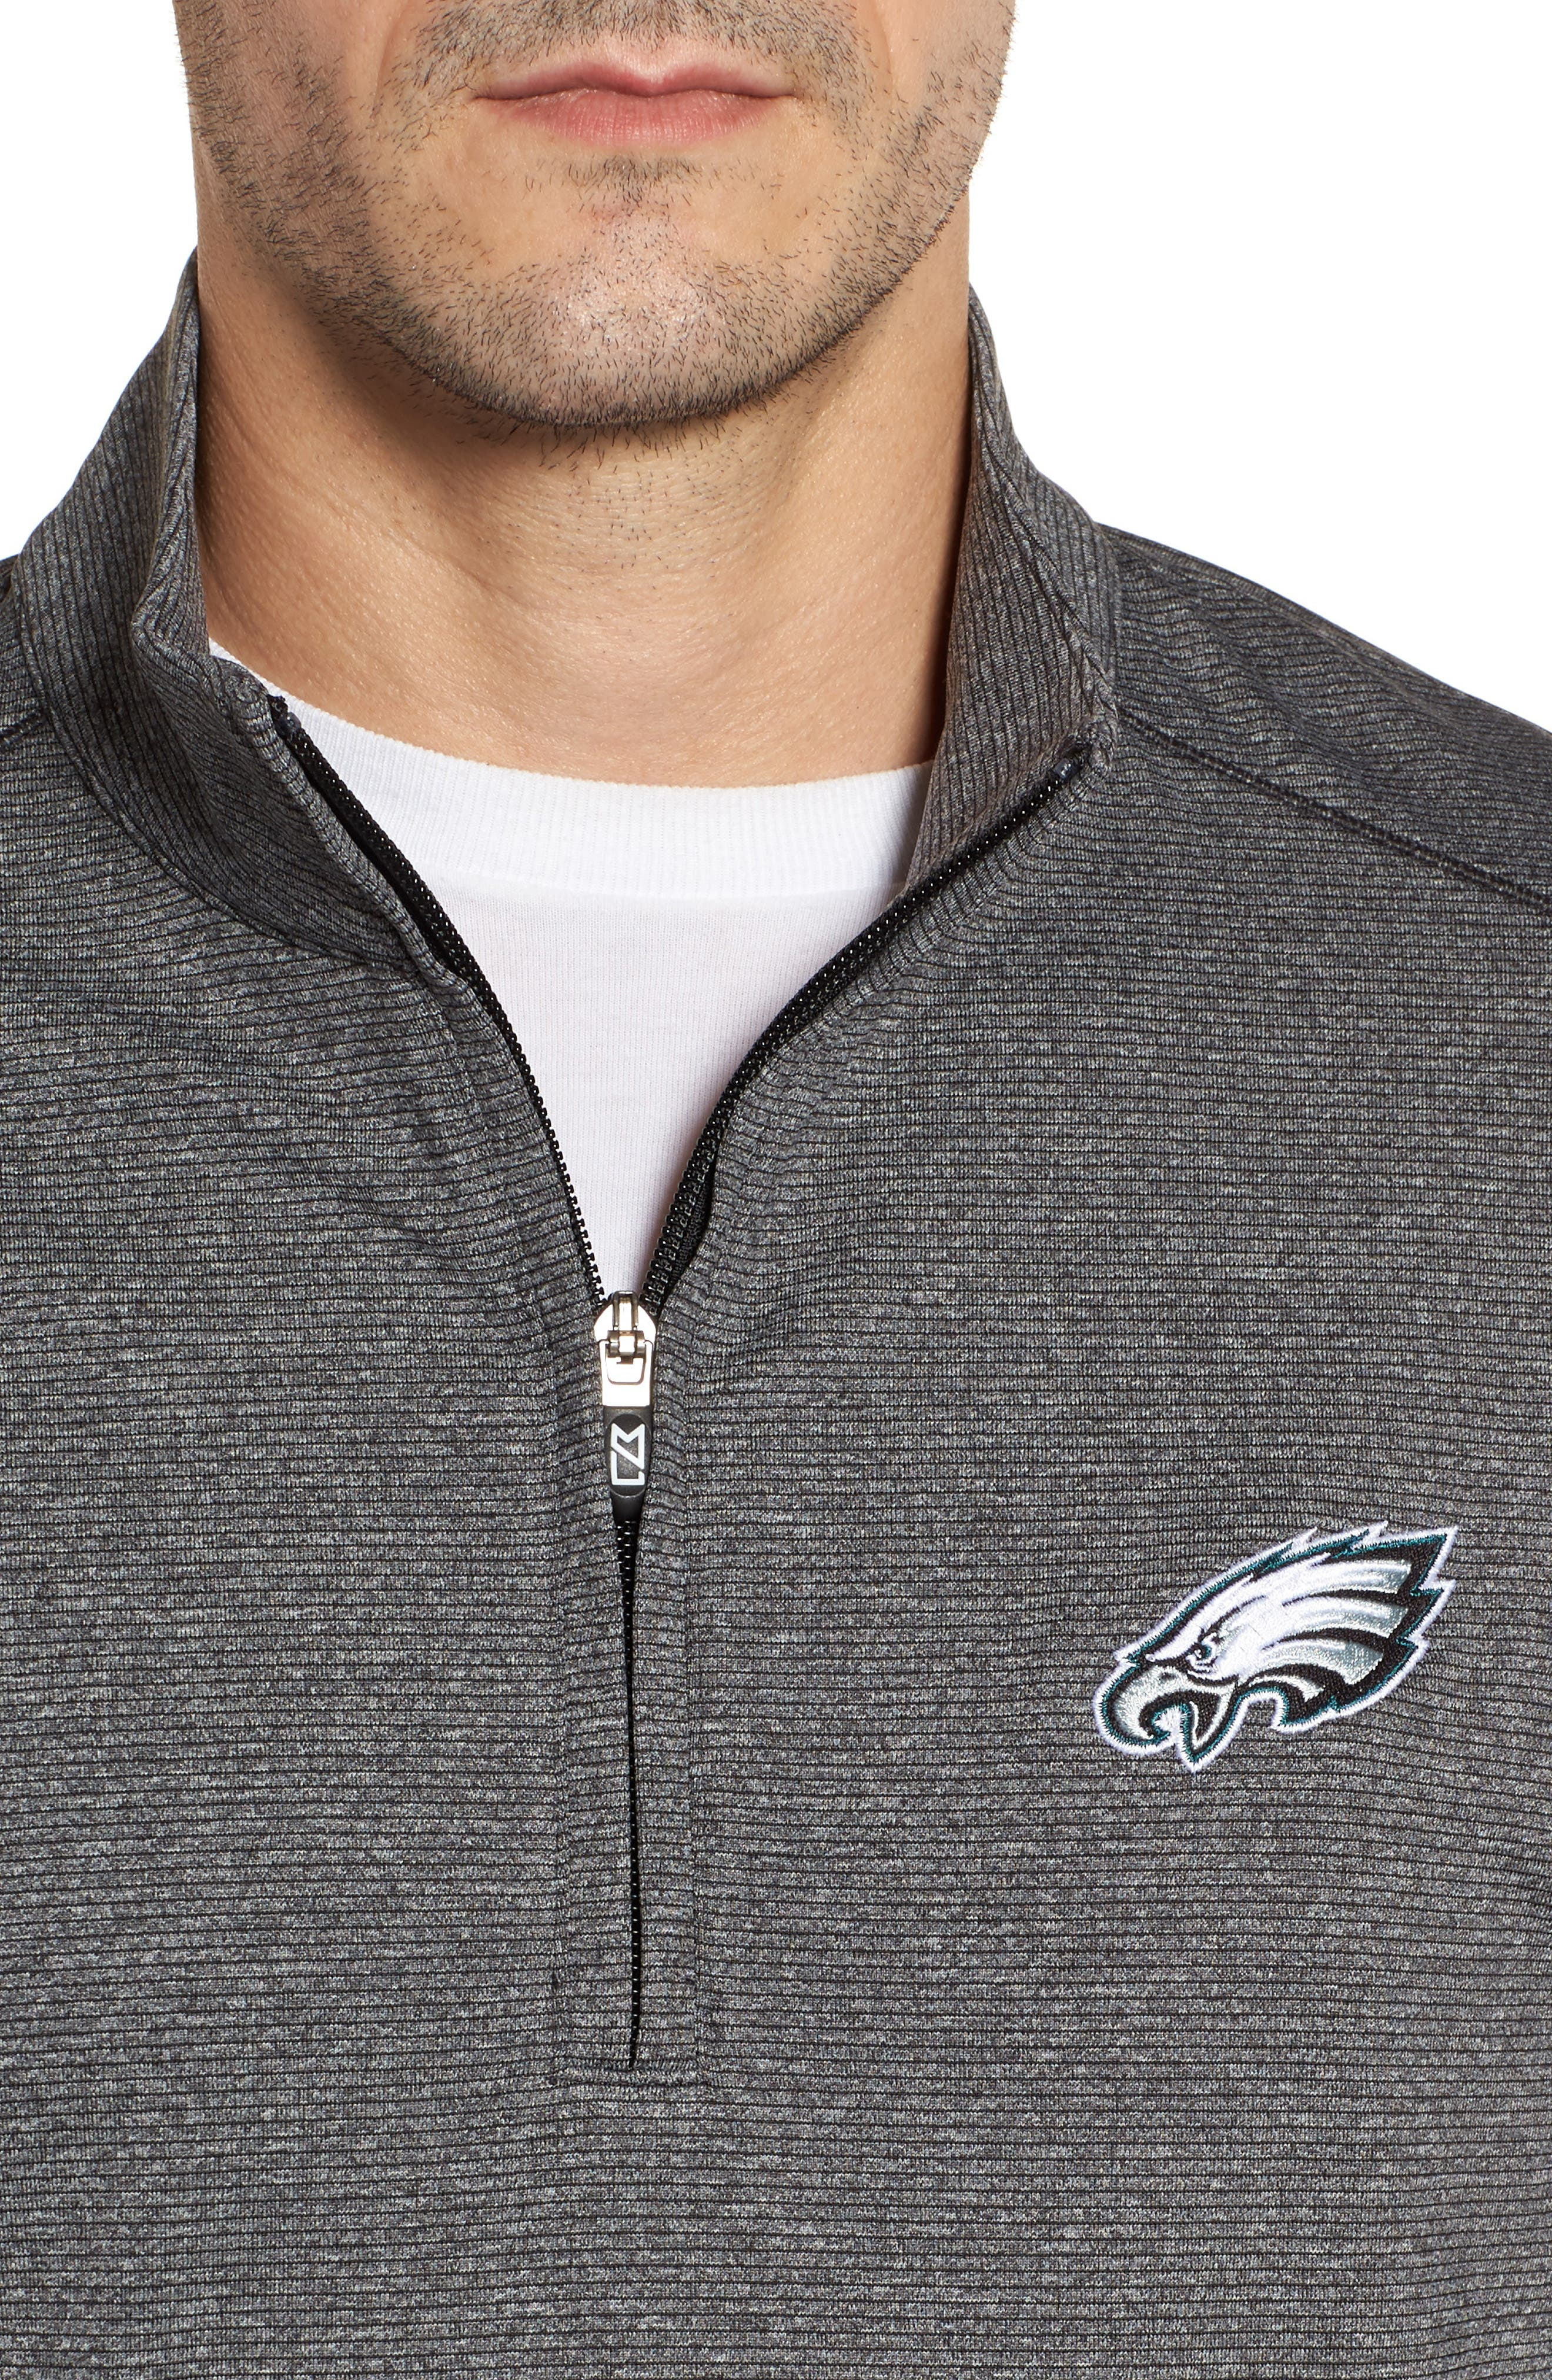 Shoreline - Philadelphia Eagles Half Zip Pullover,                             Alternate thumbnail 4, color,                             Charcoal Heather